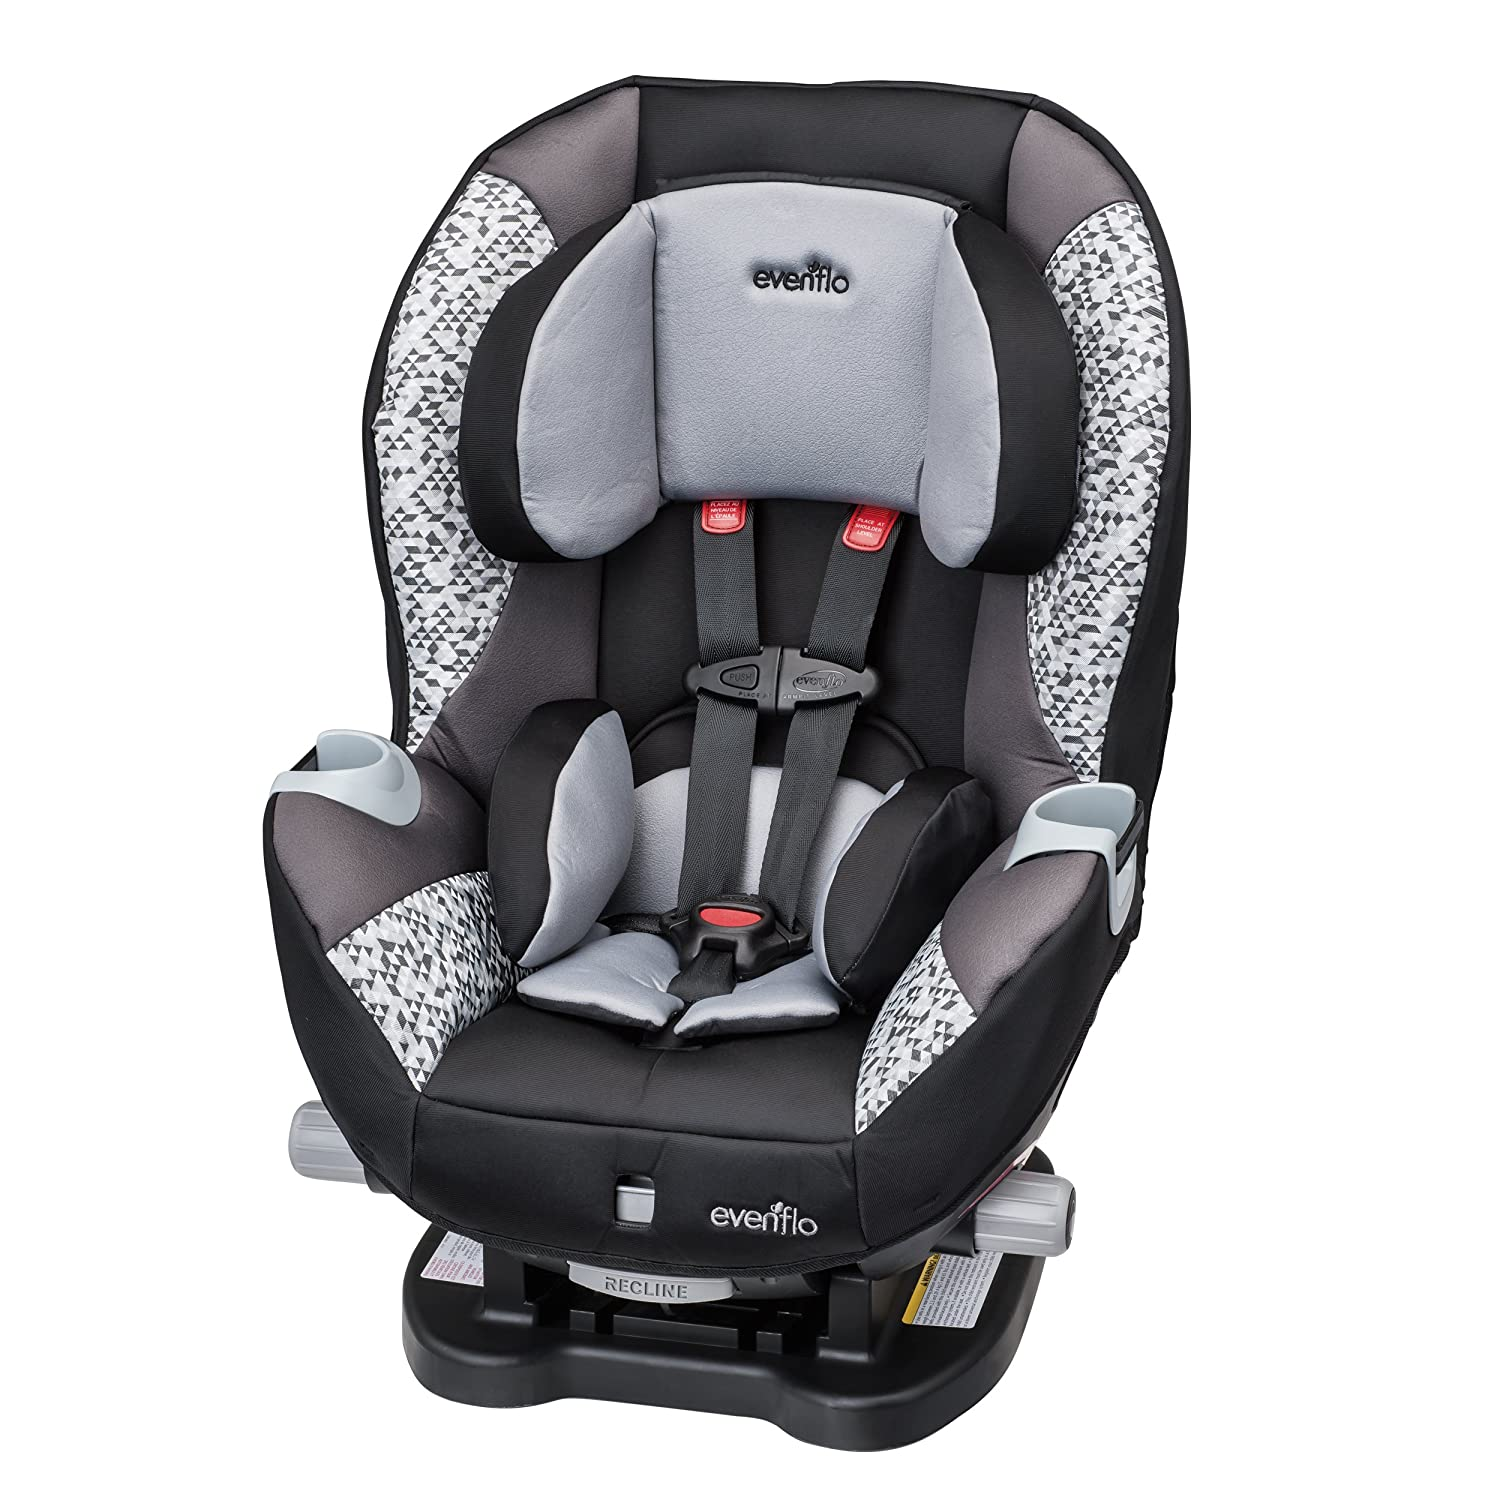 evenflo car seat comparison. Black Bedroom Furniture Sets. Home Design Ideas